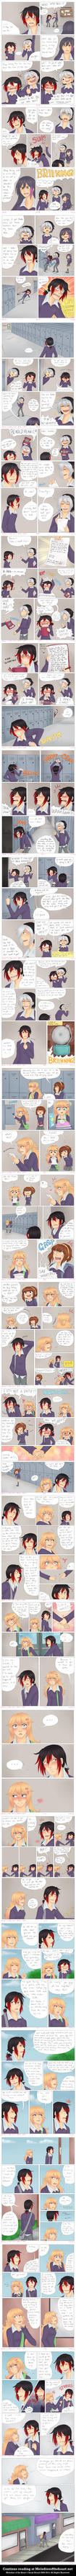 Melodies of the Heart: C2 [pgs: 25 - 48] by Little-Miss-Boxie